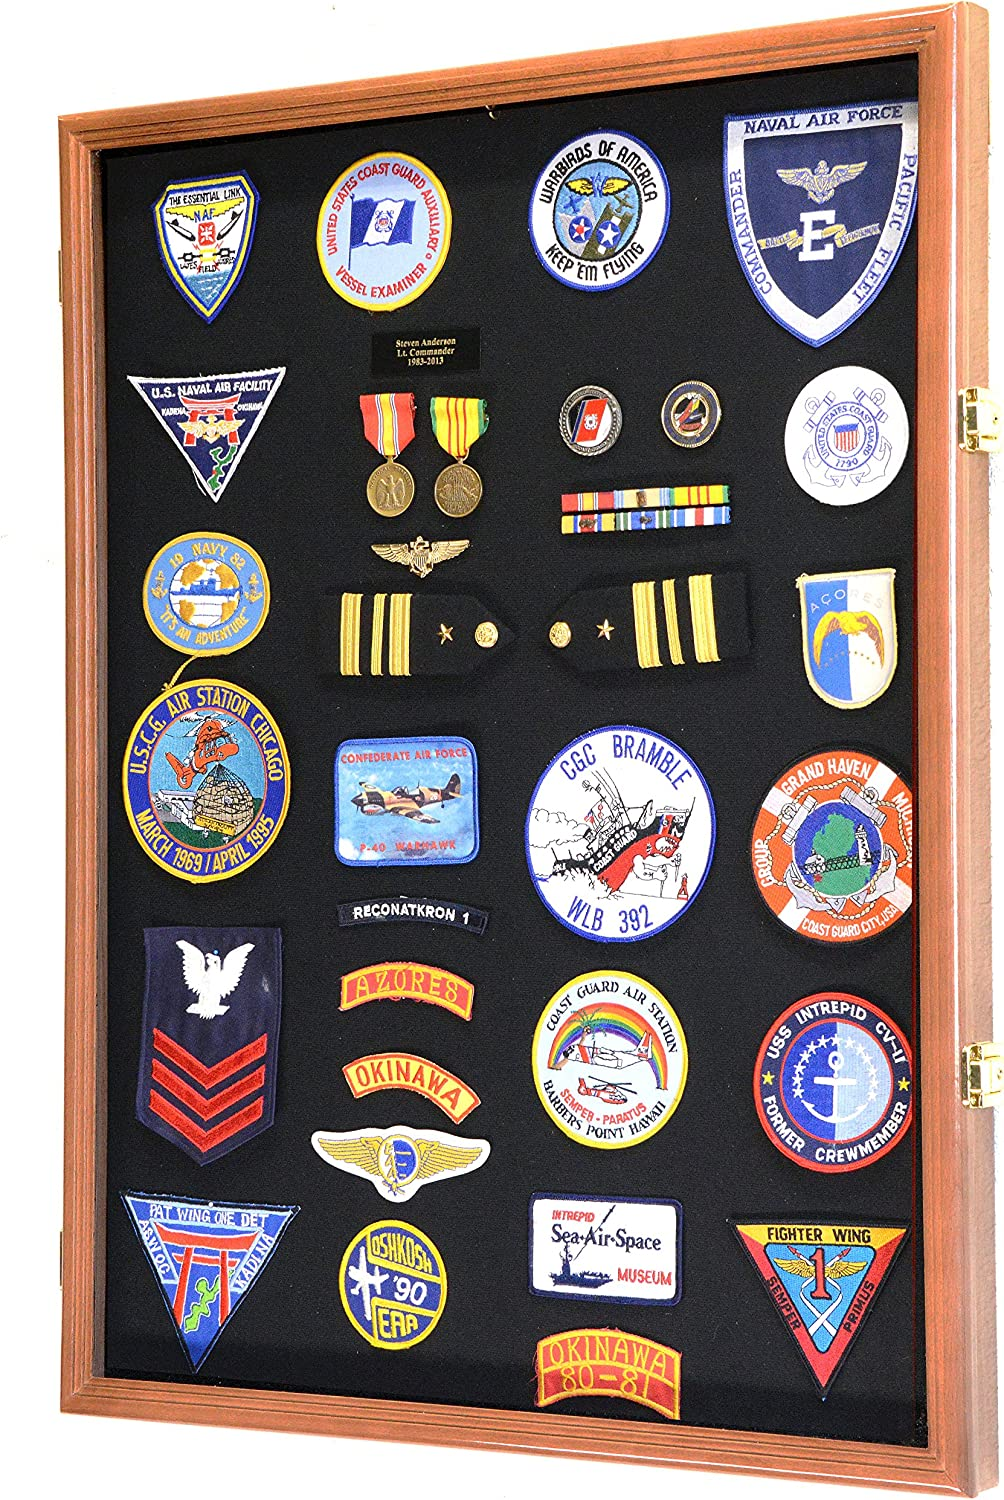 XL Military Medals/Pin/Patches/Badges/Ribbons/Insignia/Flag Display Case Cabinet Shadowbox (Walnut Wood Finish)